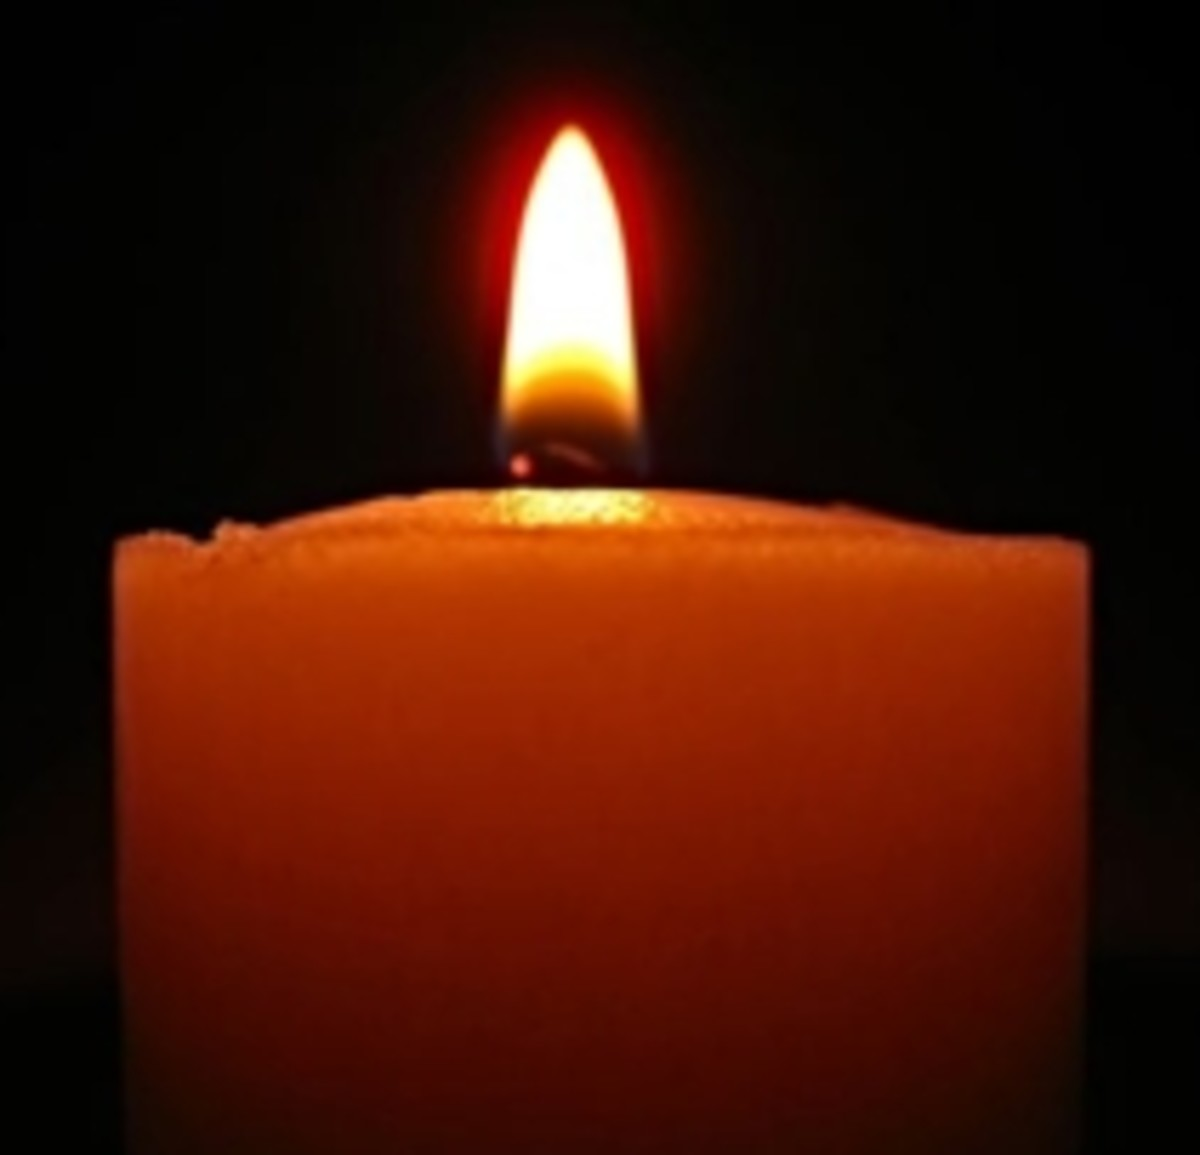 Trim the wick regularly to ensure the candle burns evenly